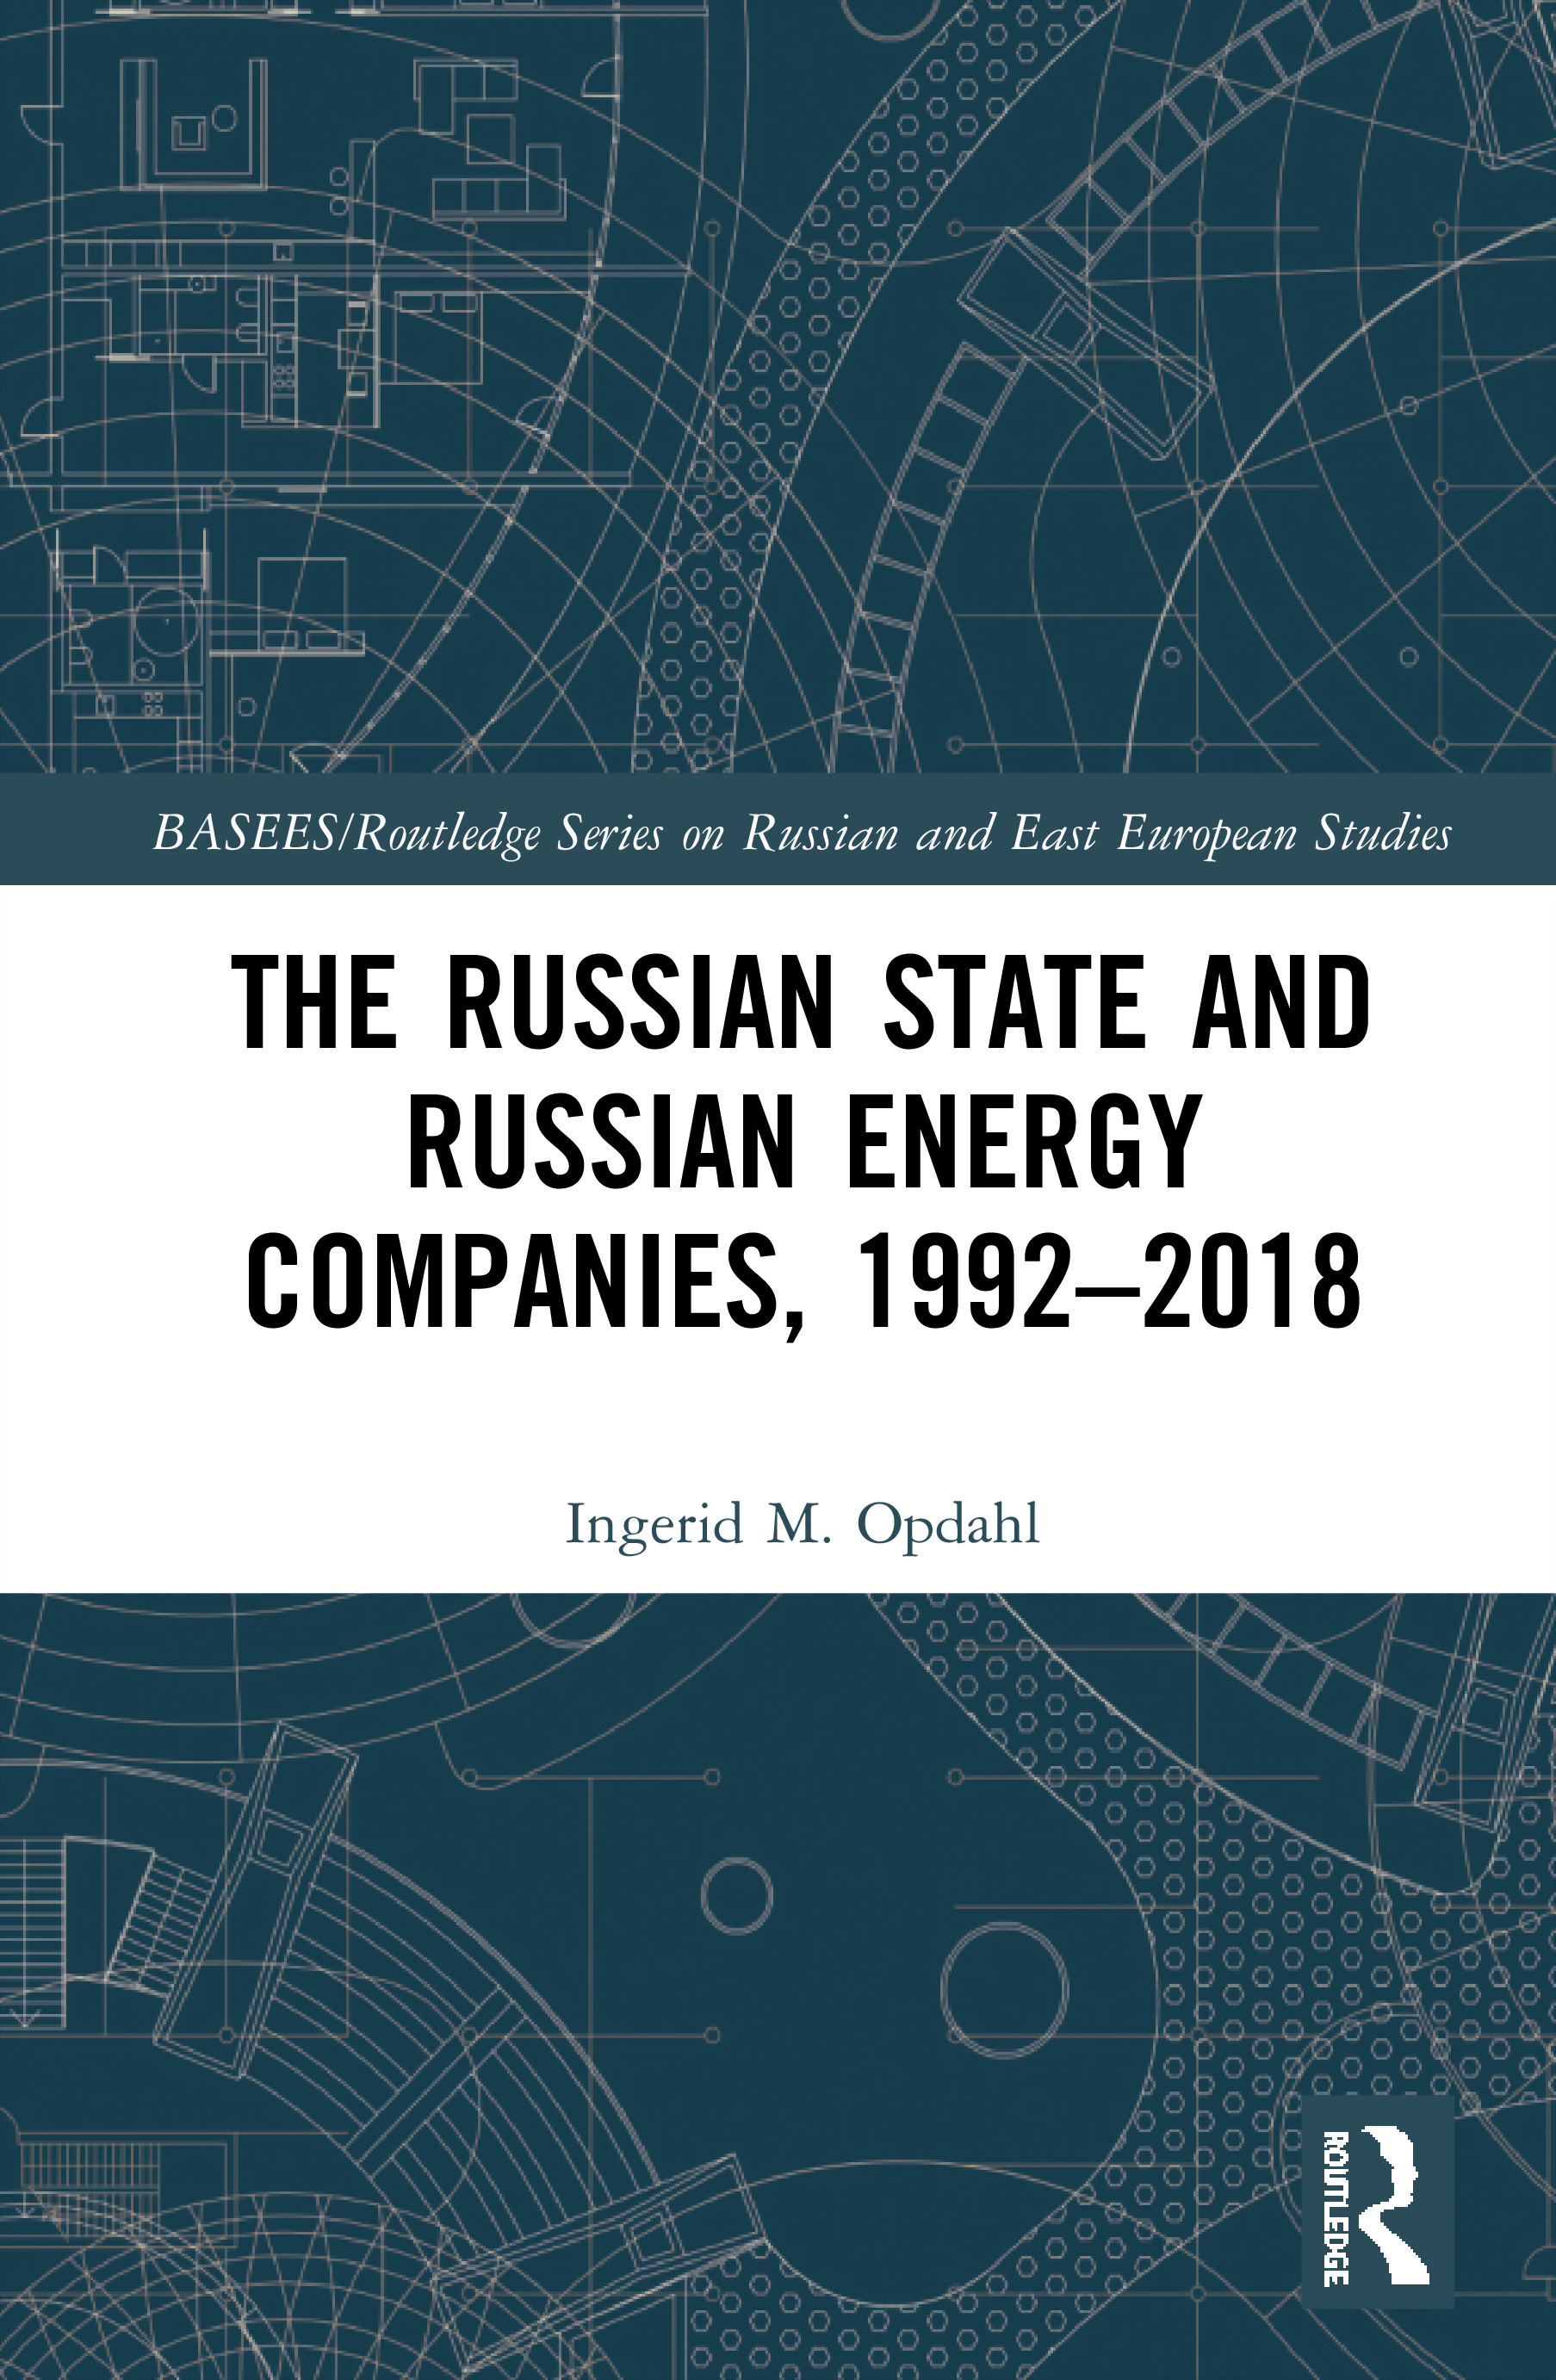 The Russian State and Russian Energy Companies, 1992–2018 book cover